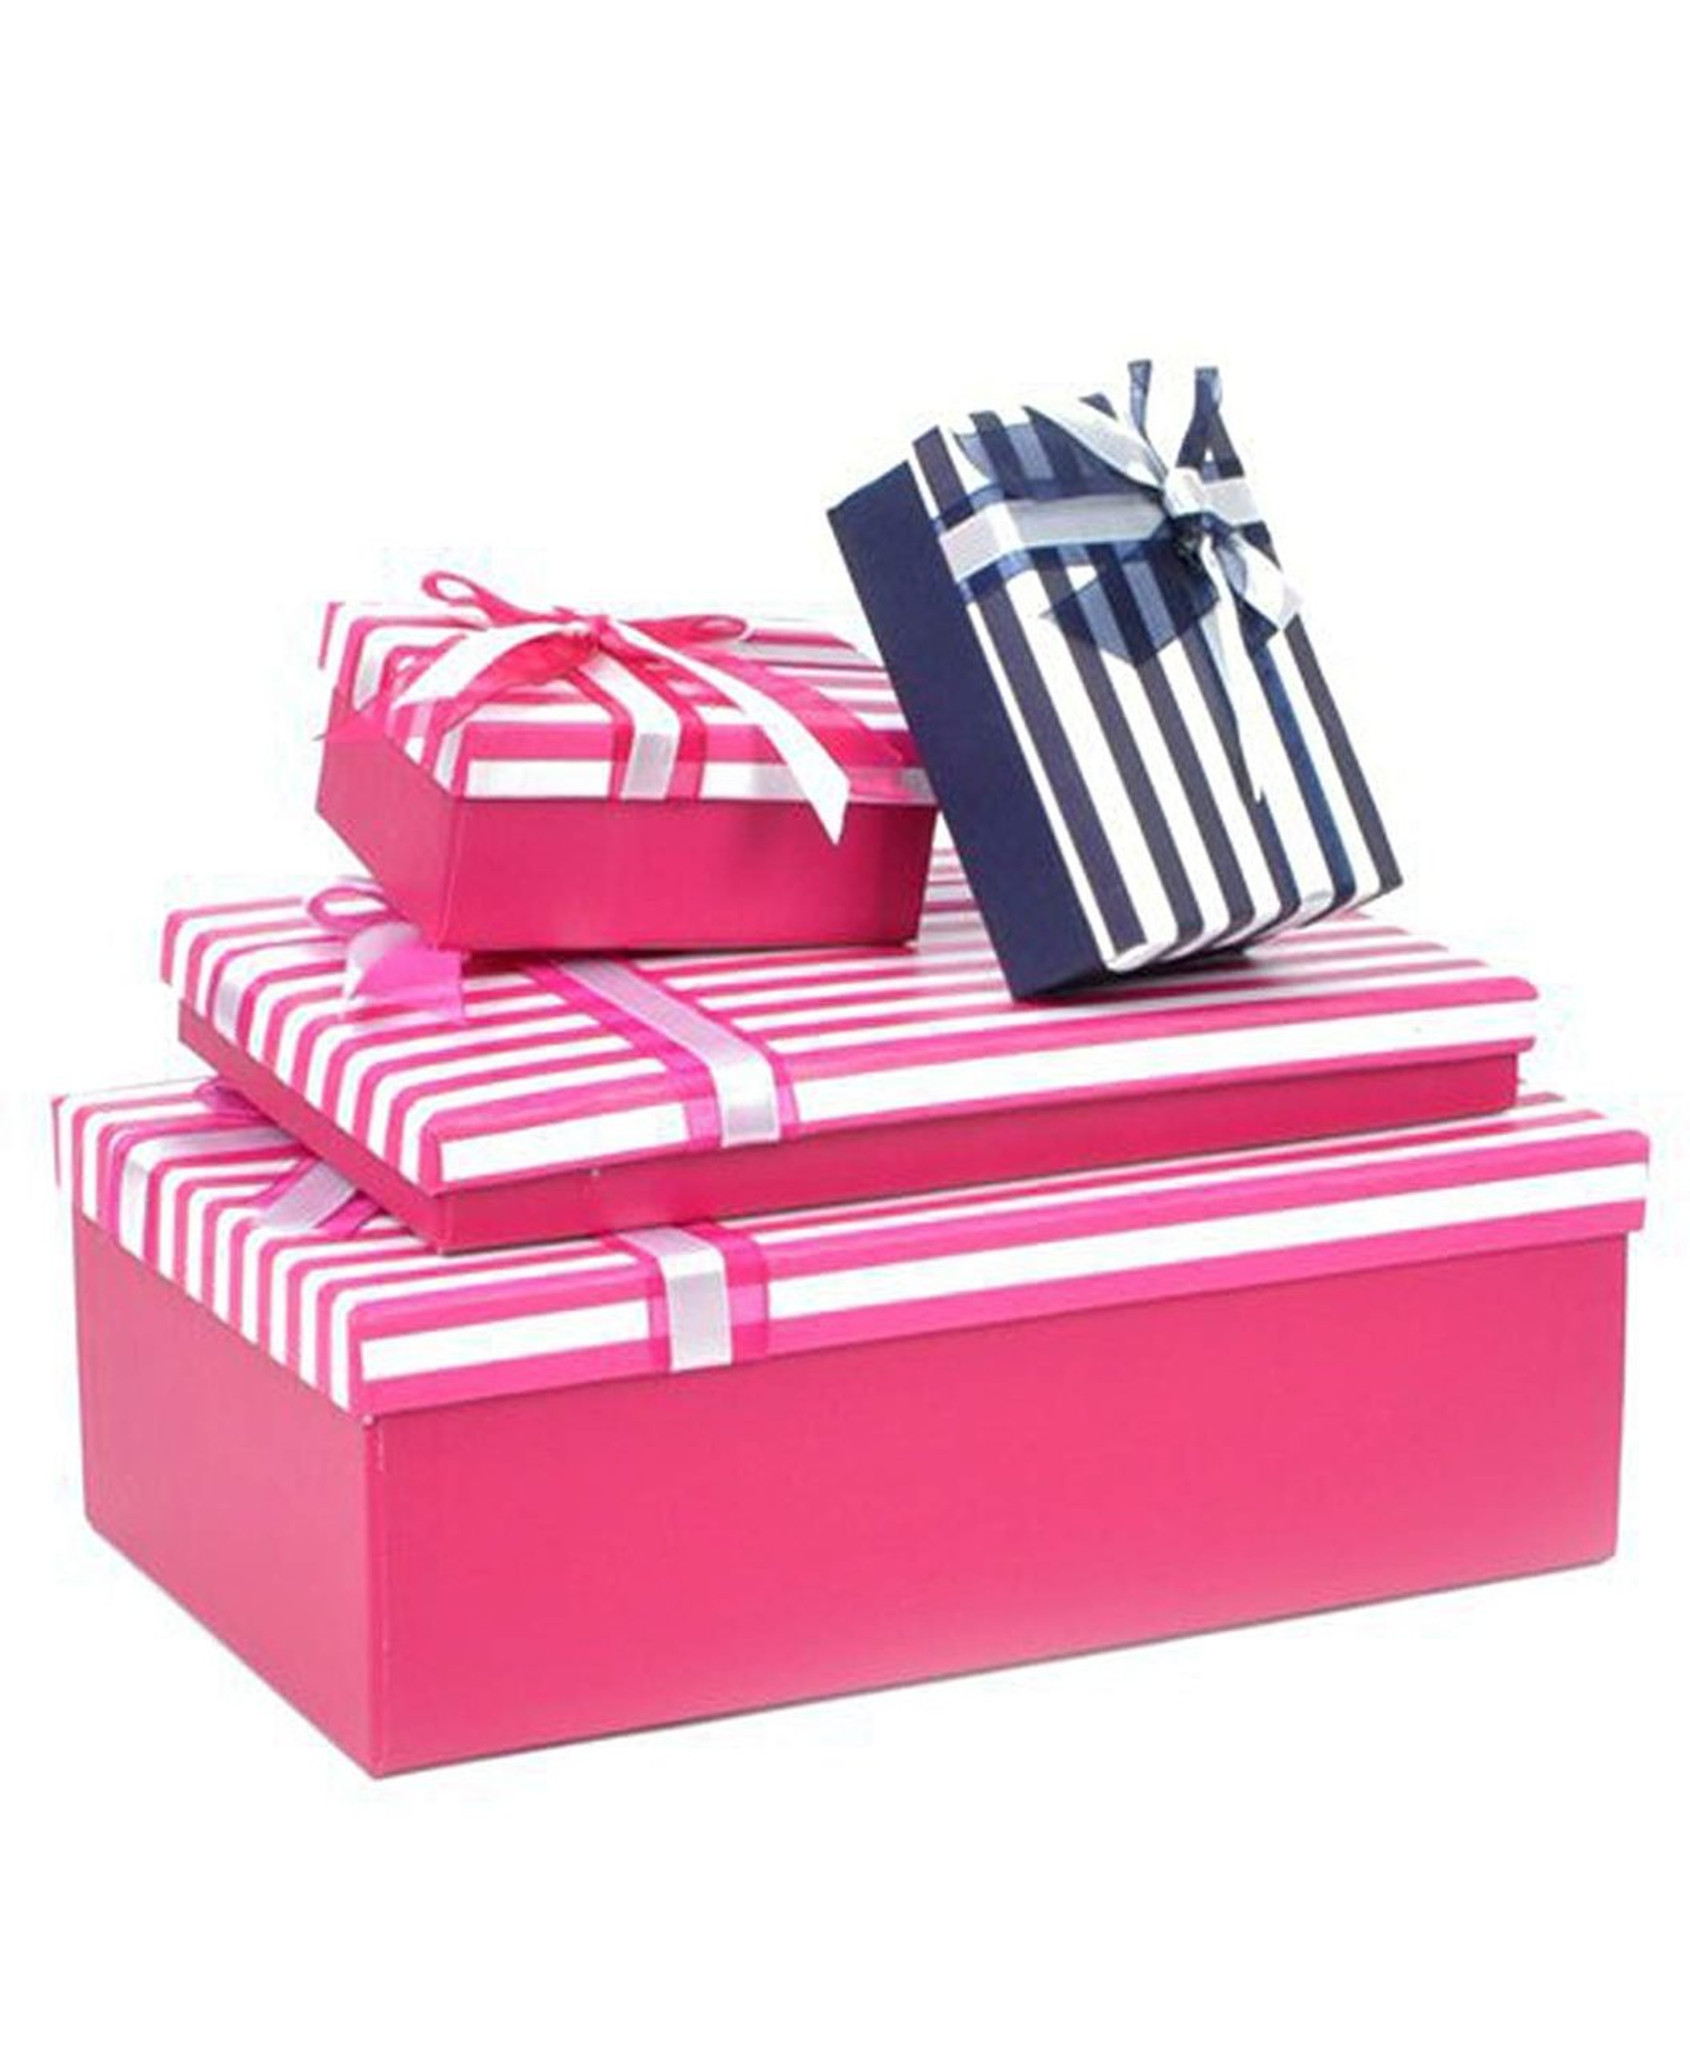 Boxed Gifts S Elegant Gift Box Set Pink Boxed Gifts